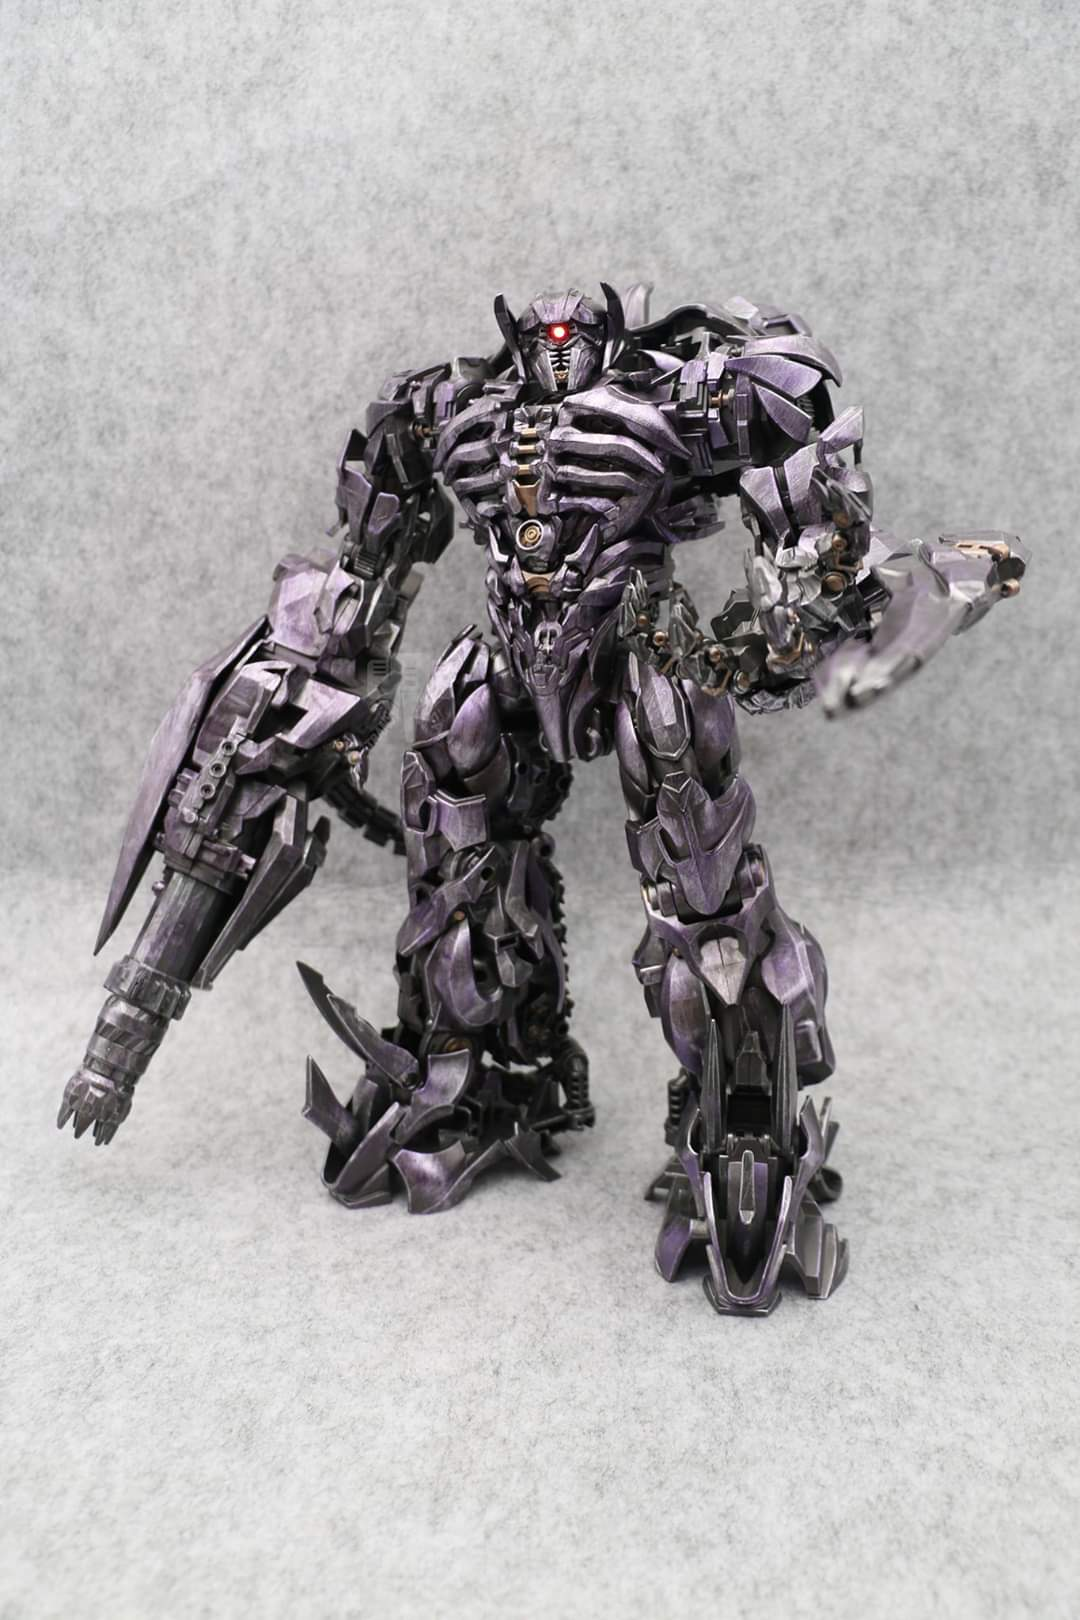 [Zeus Model] Produit Tiers - ZS-01 Guardian of the Universe - aka DOTM Shockwave FAJ63YXl_o